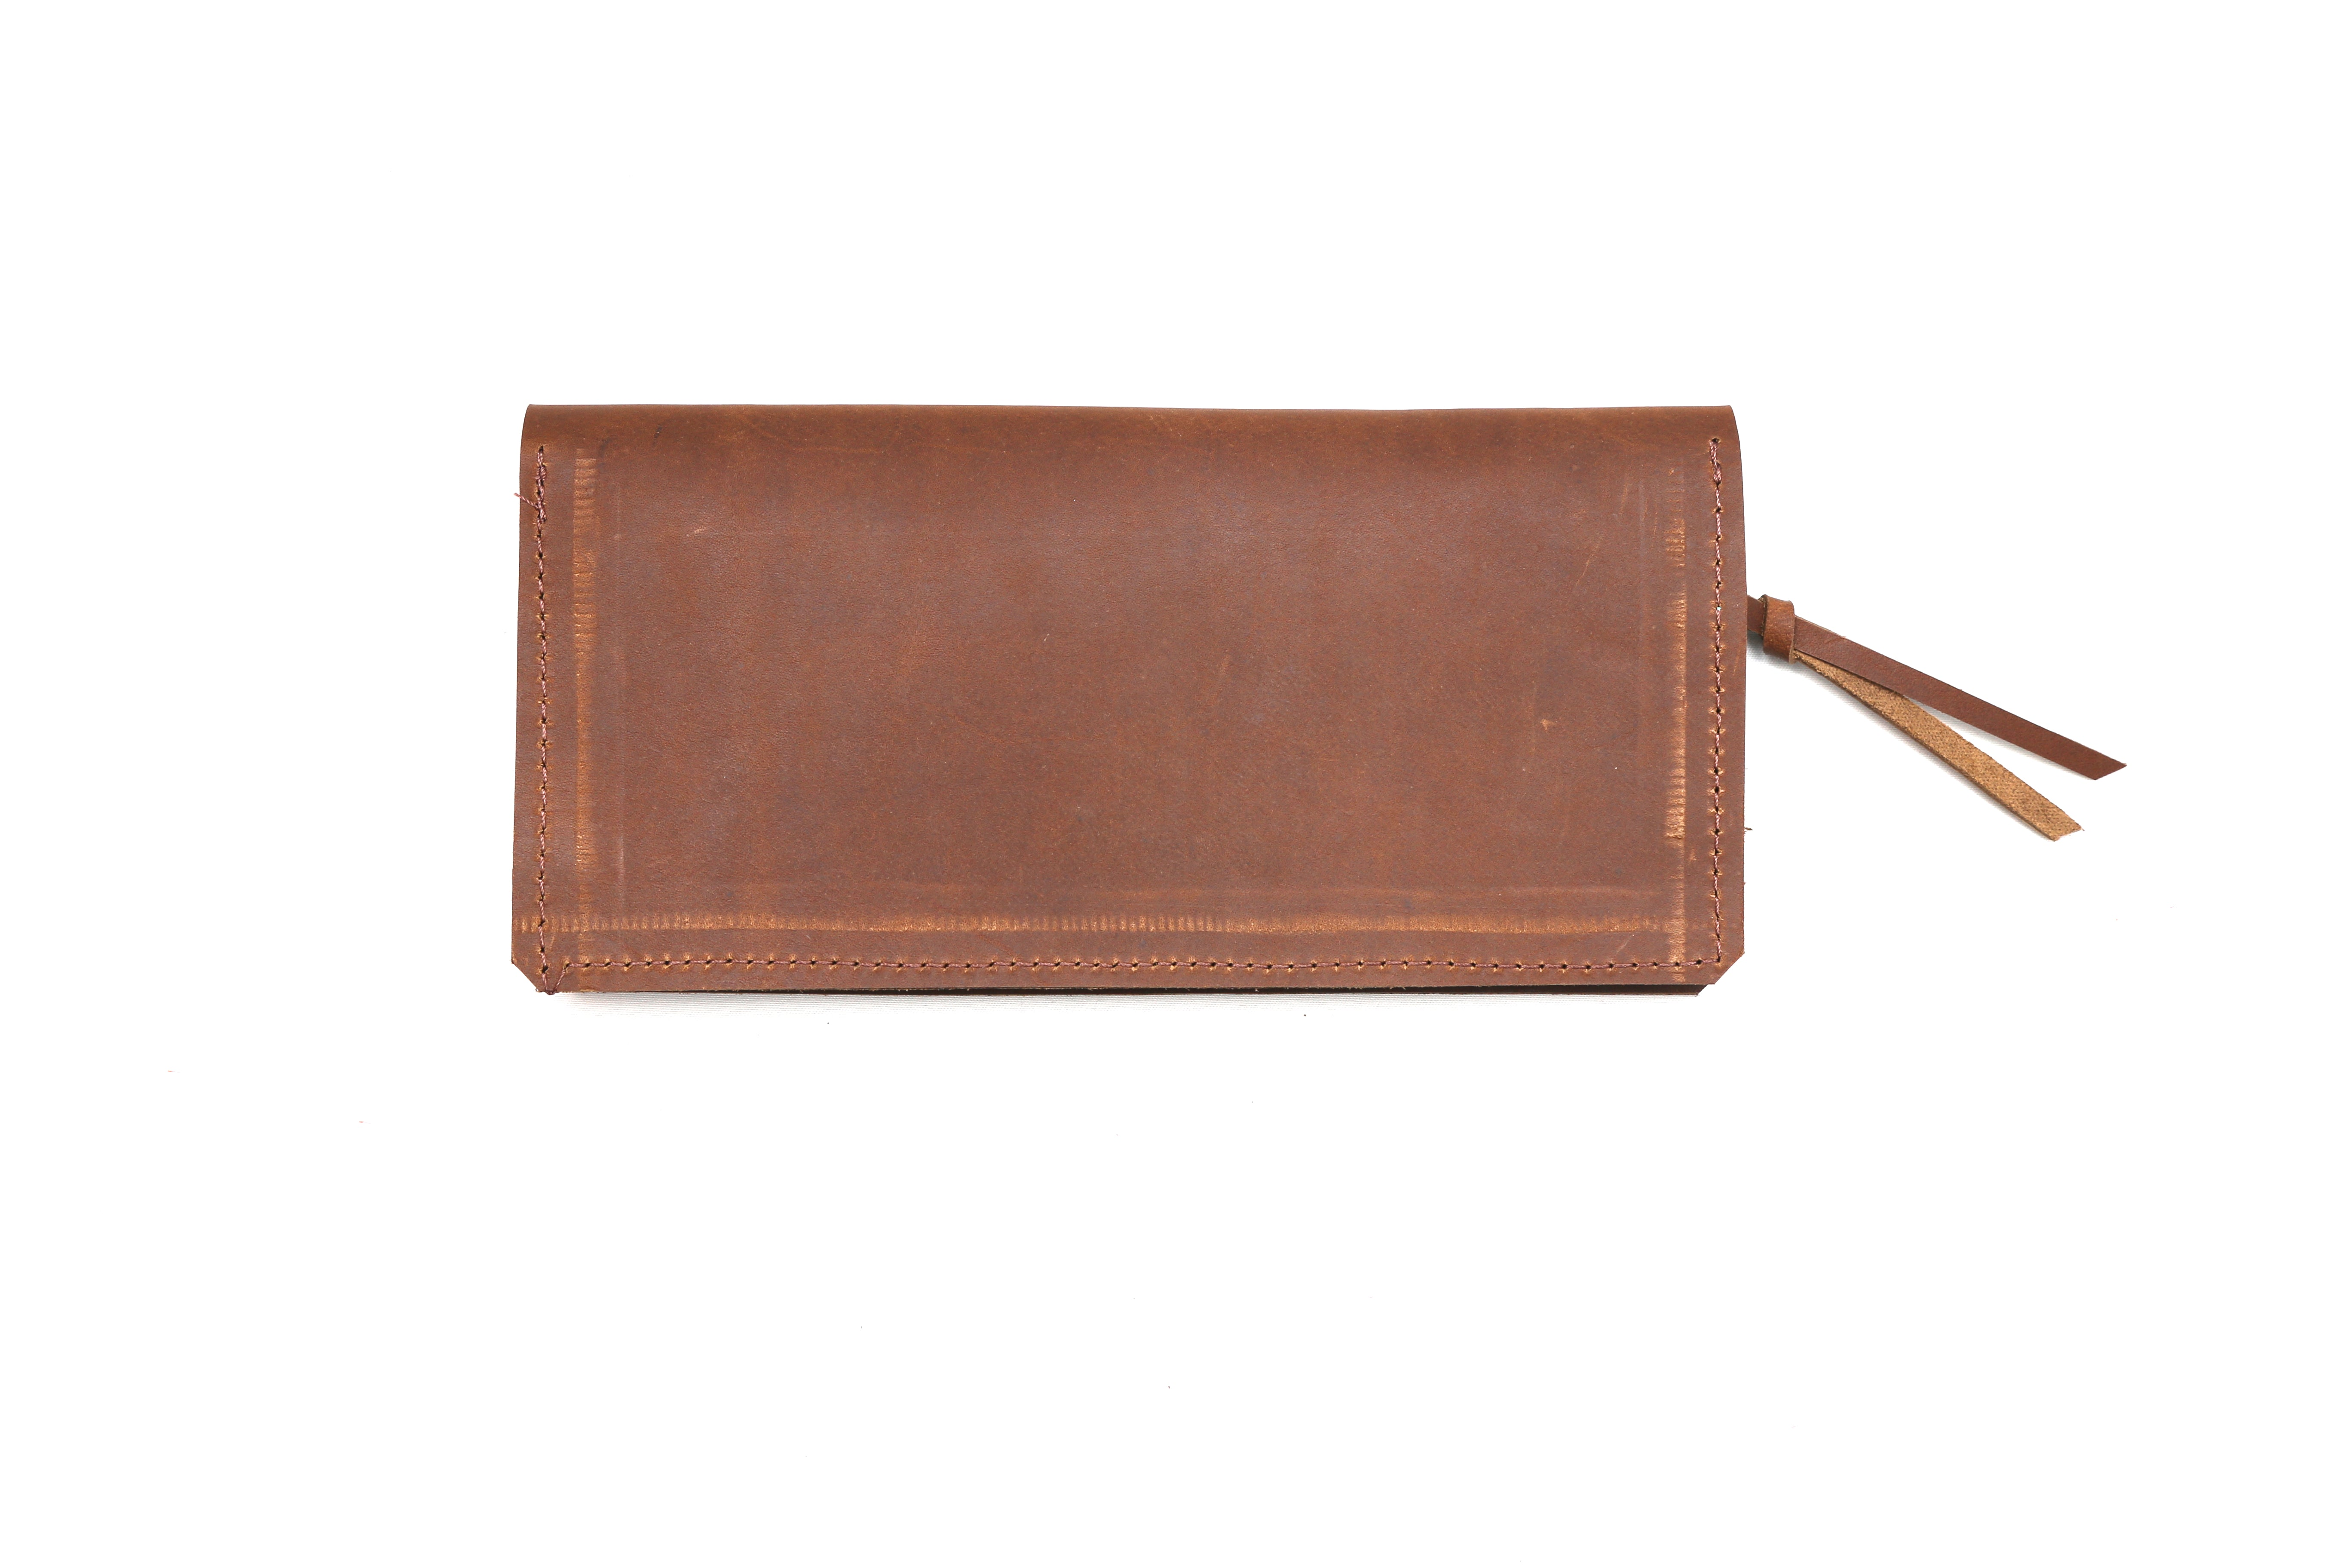 Women's Wallet in Brown Leather - handcrafted by Market Canvas Leather in Tofino, BC, Canada